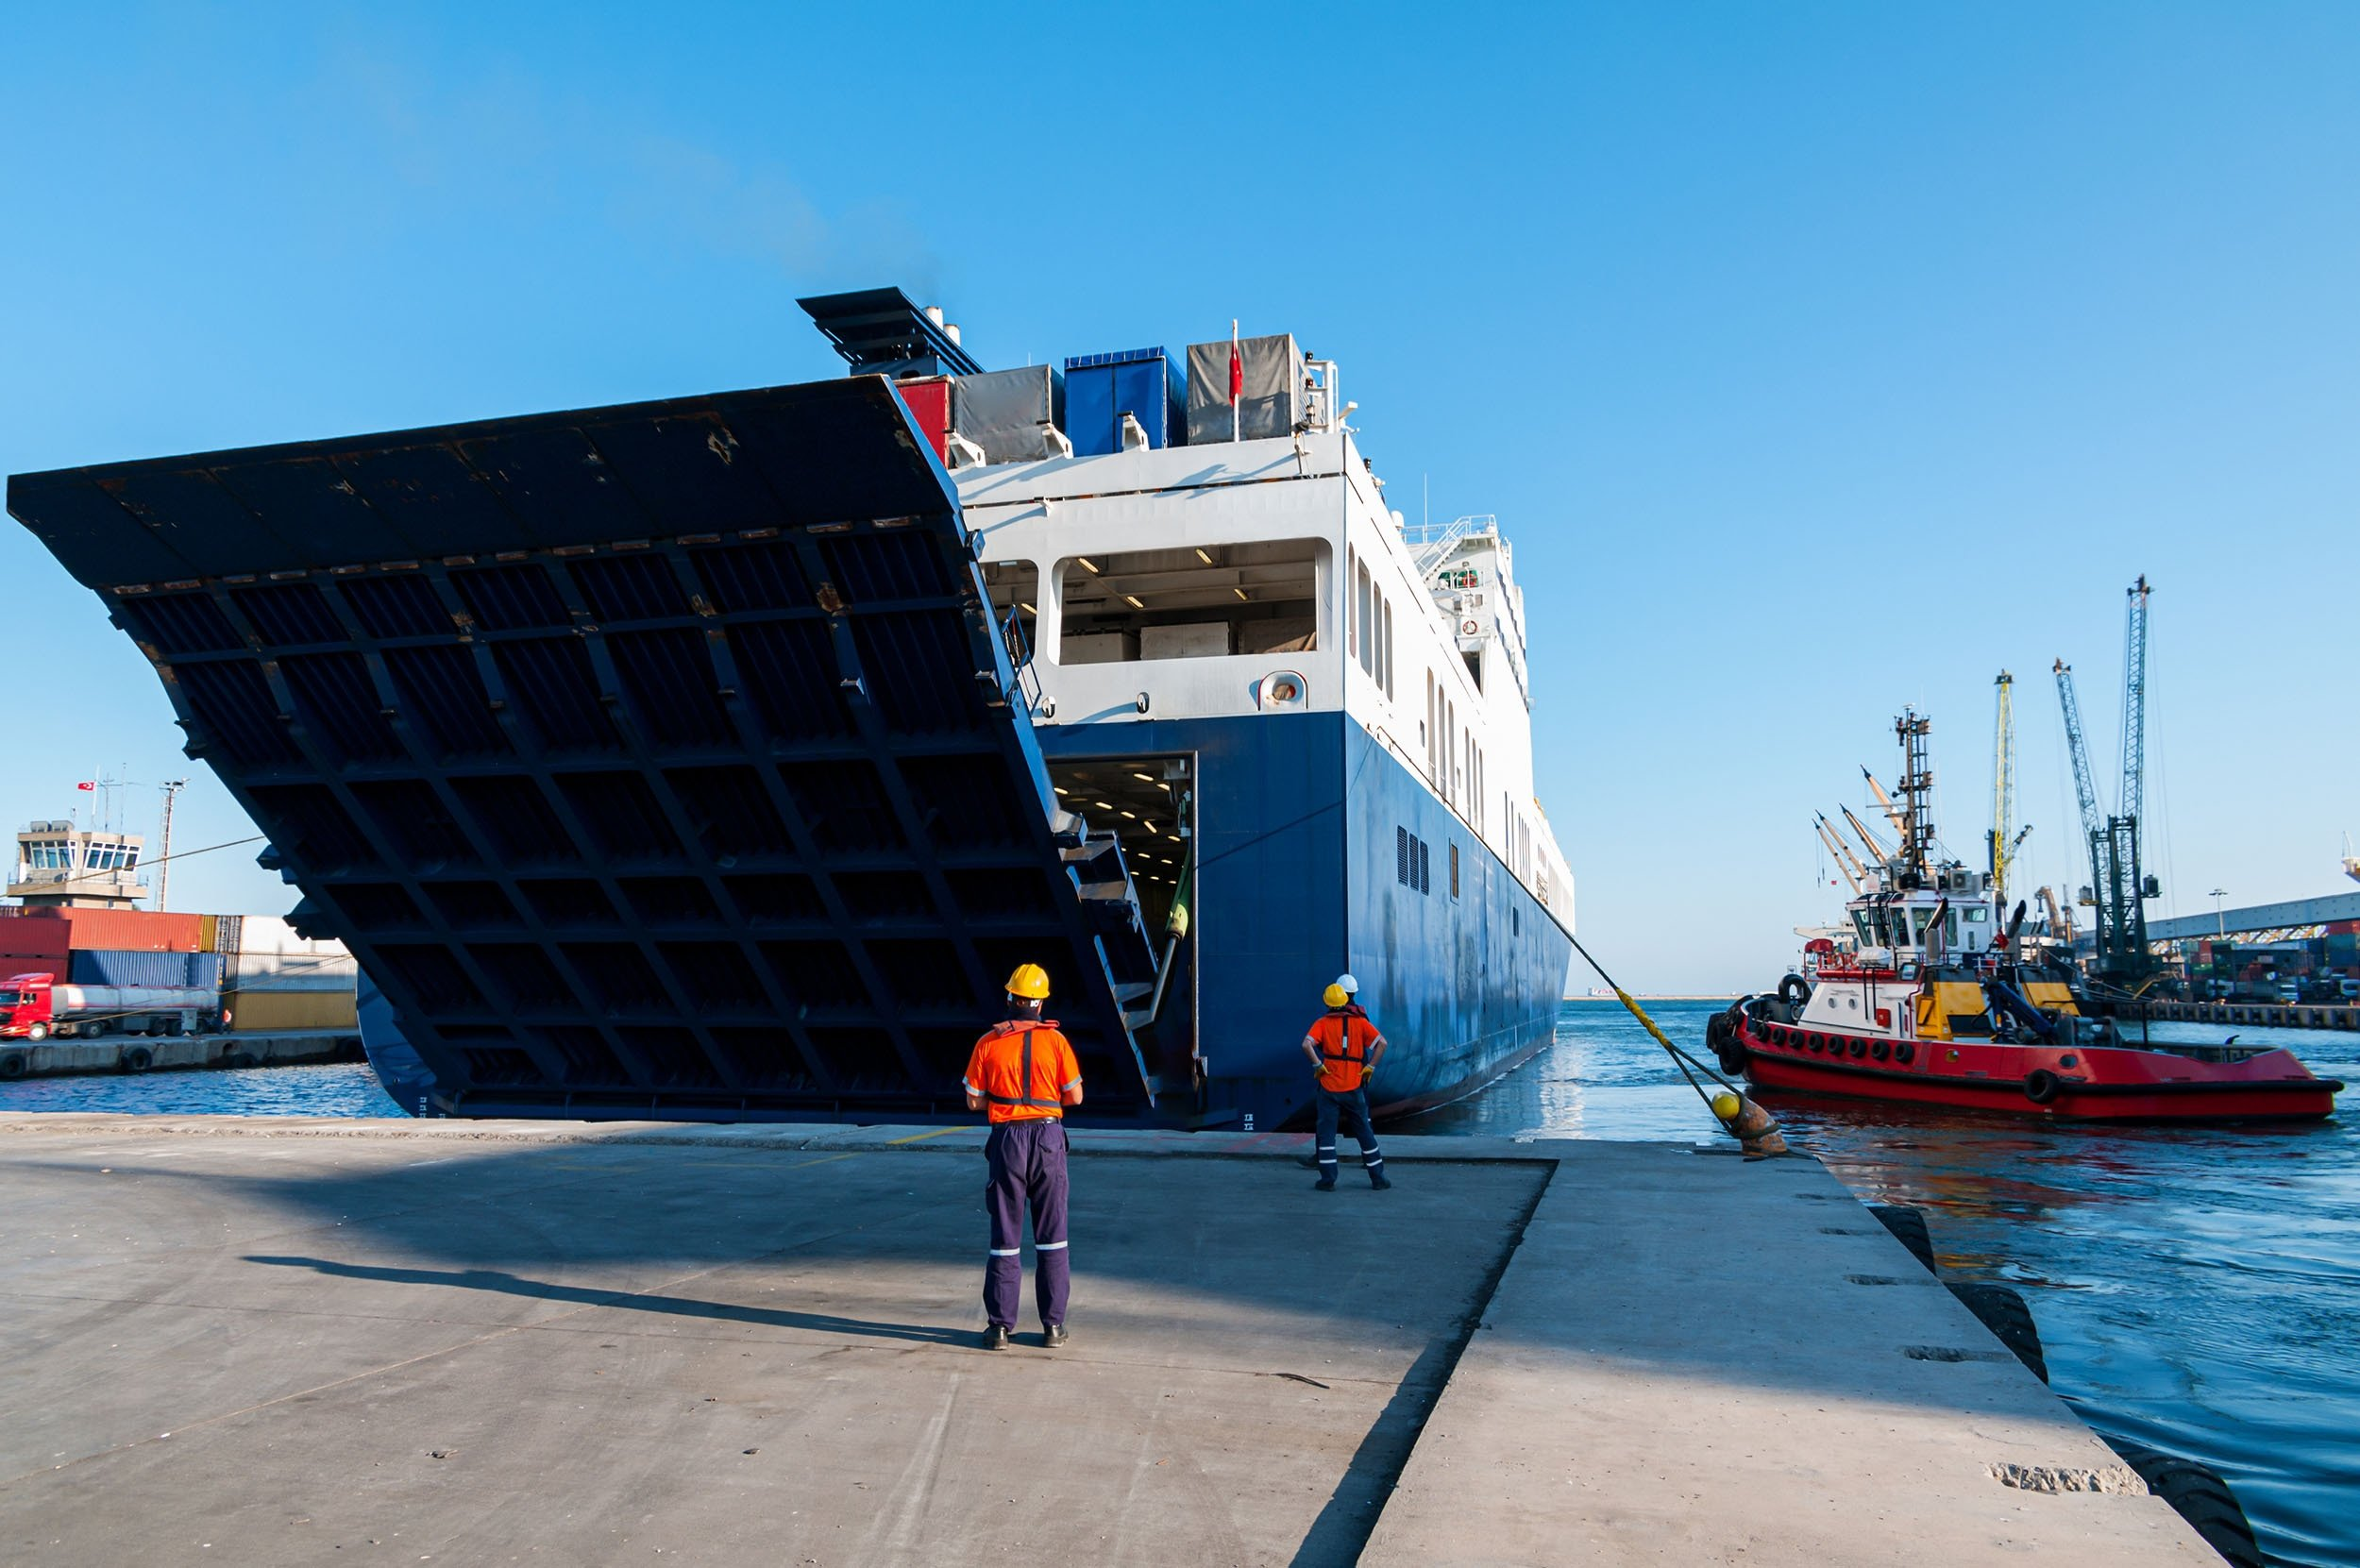 The Open Stern Quarter Ramp Ferry and workers at the Port of Mersin, Turkey. (Shutterstock Photo)